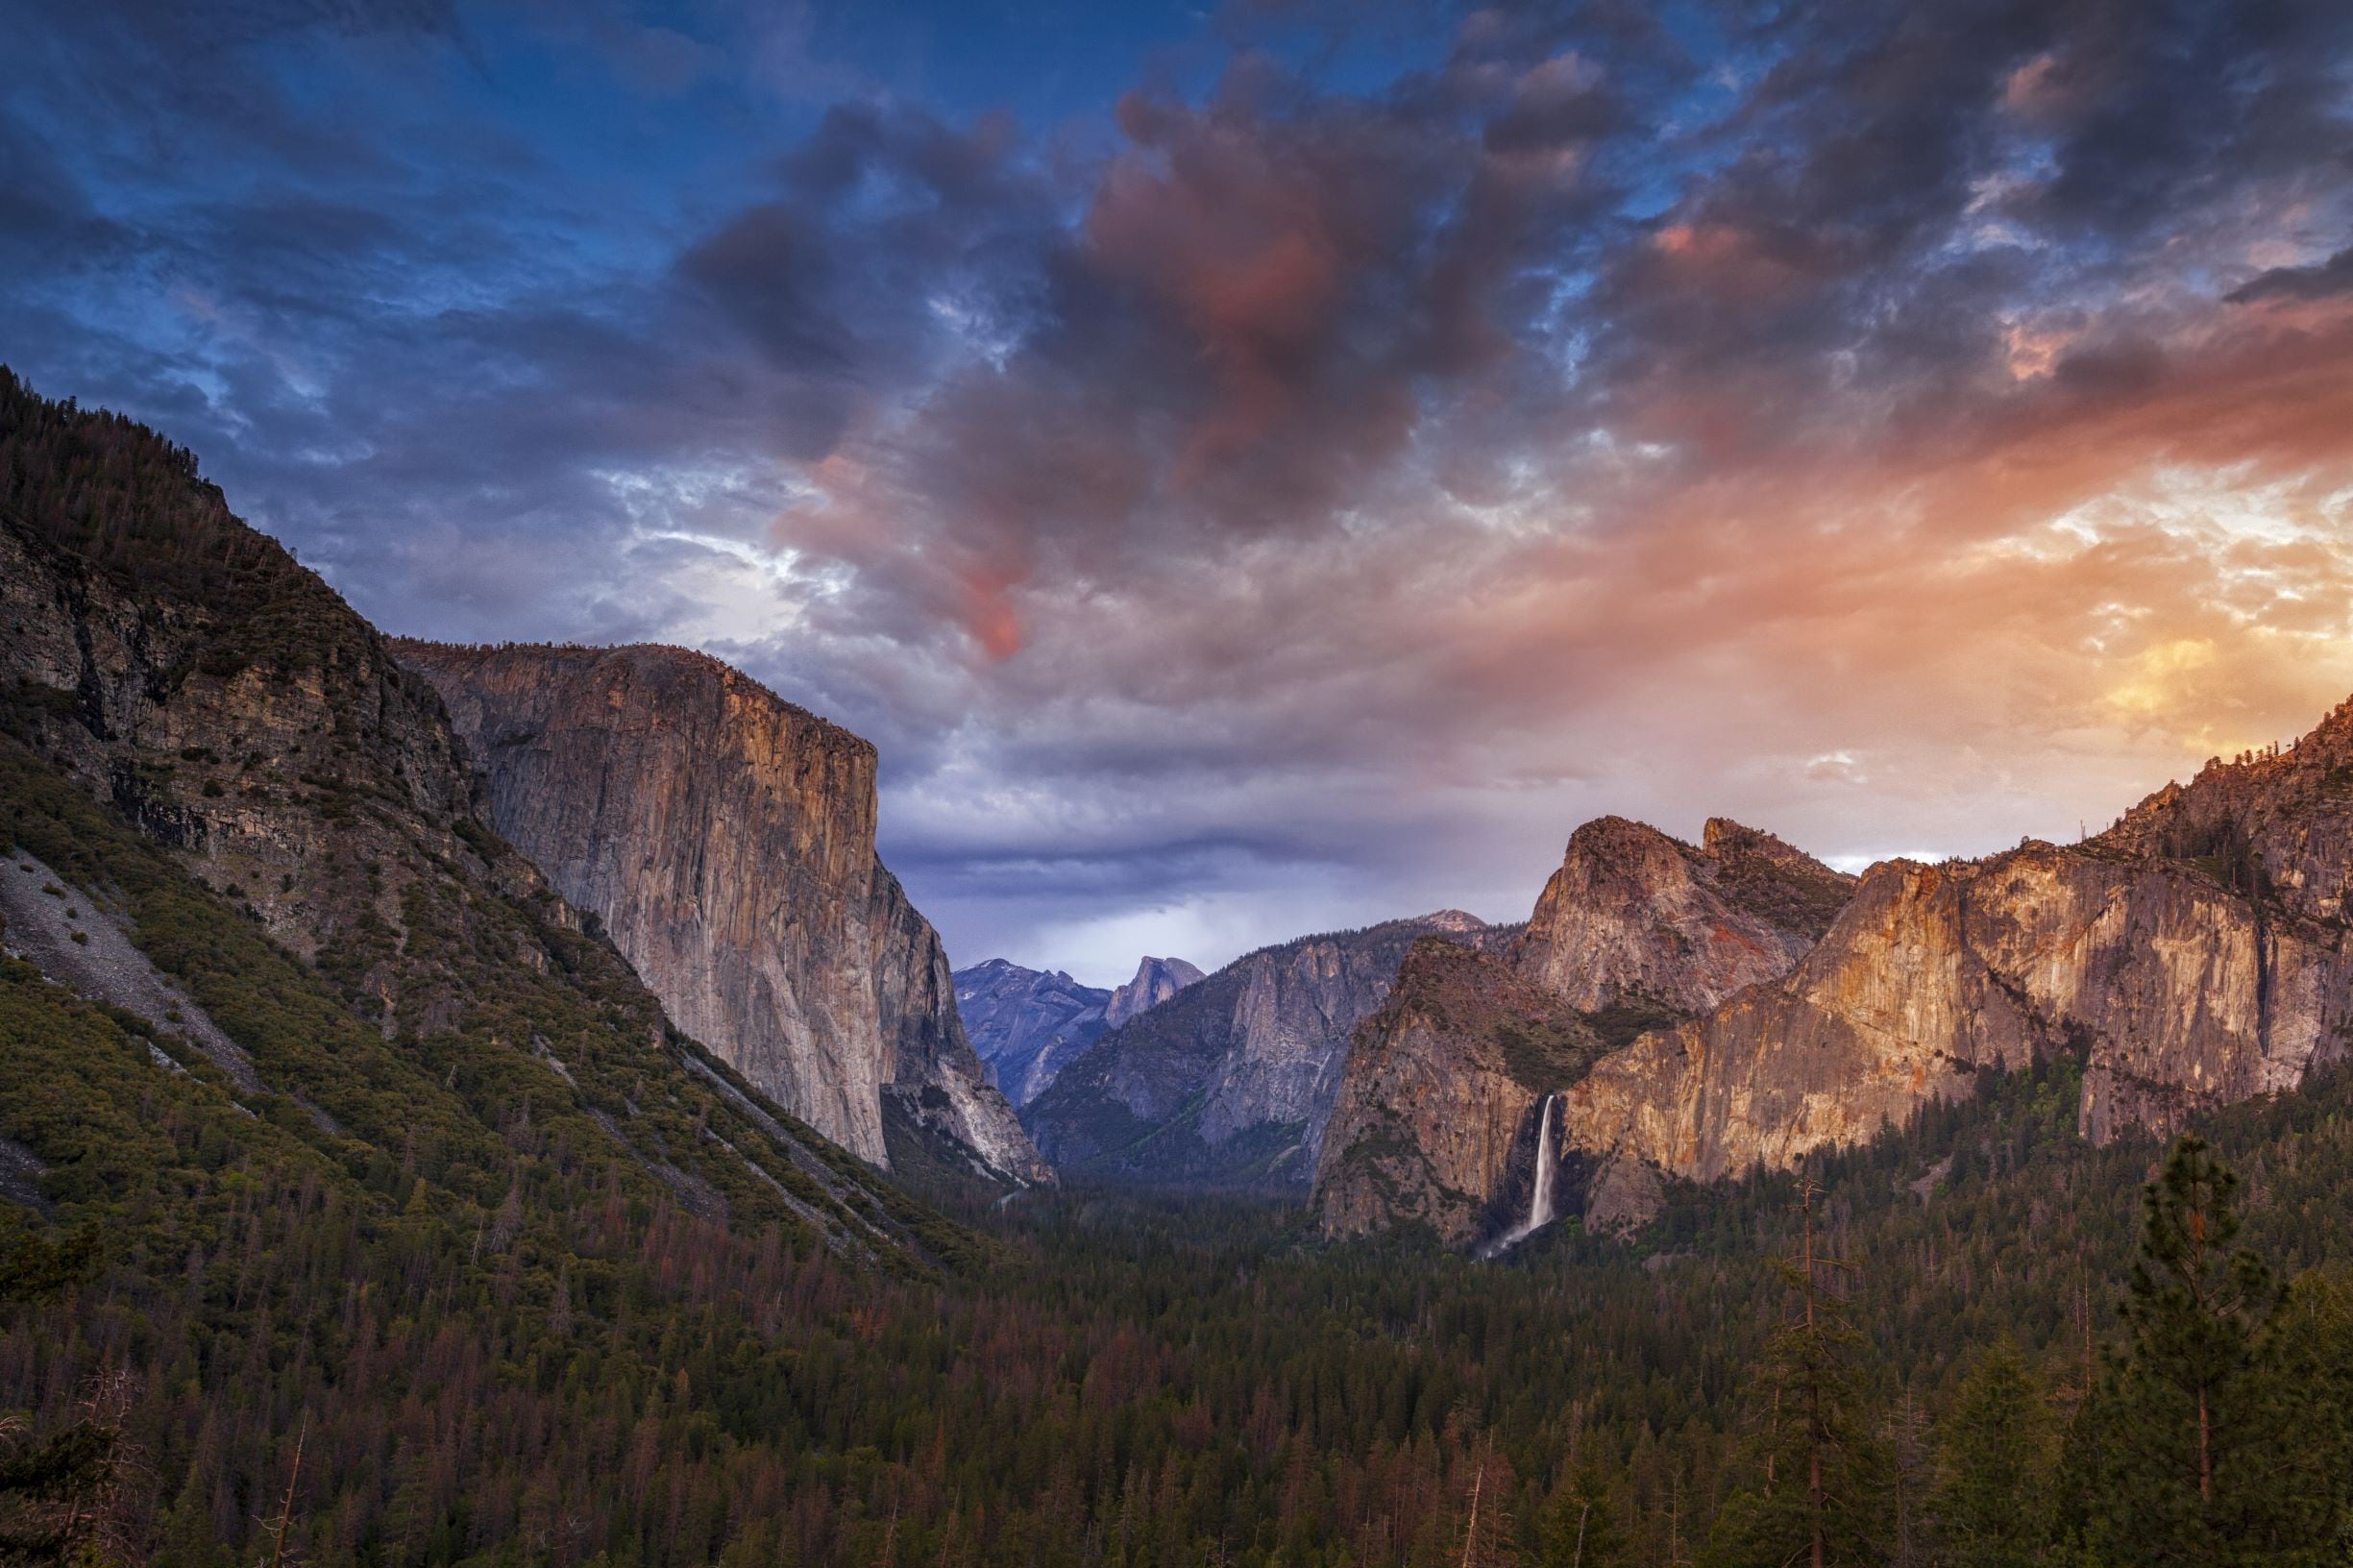 Sunset from Tunnel View in Yosemite National Park.